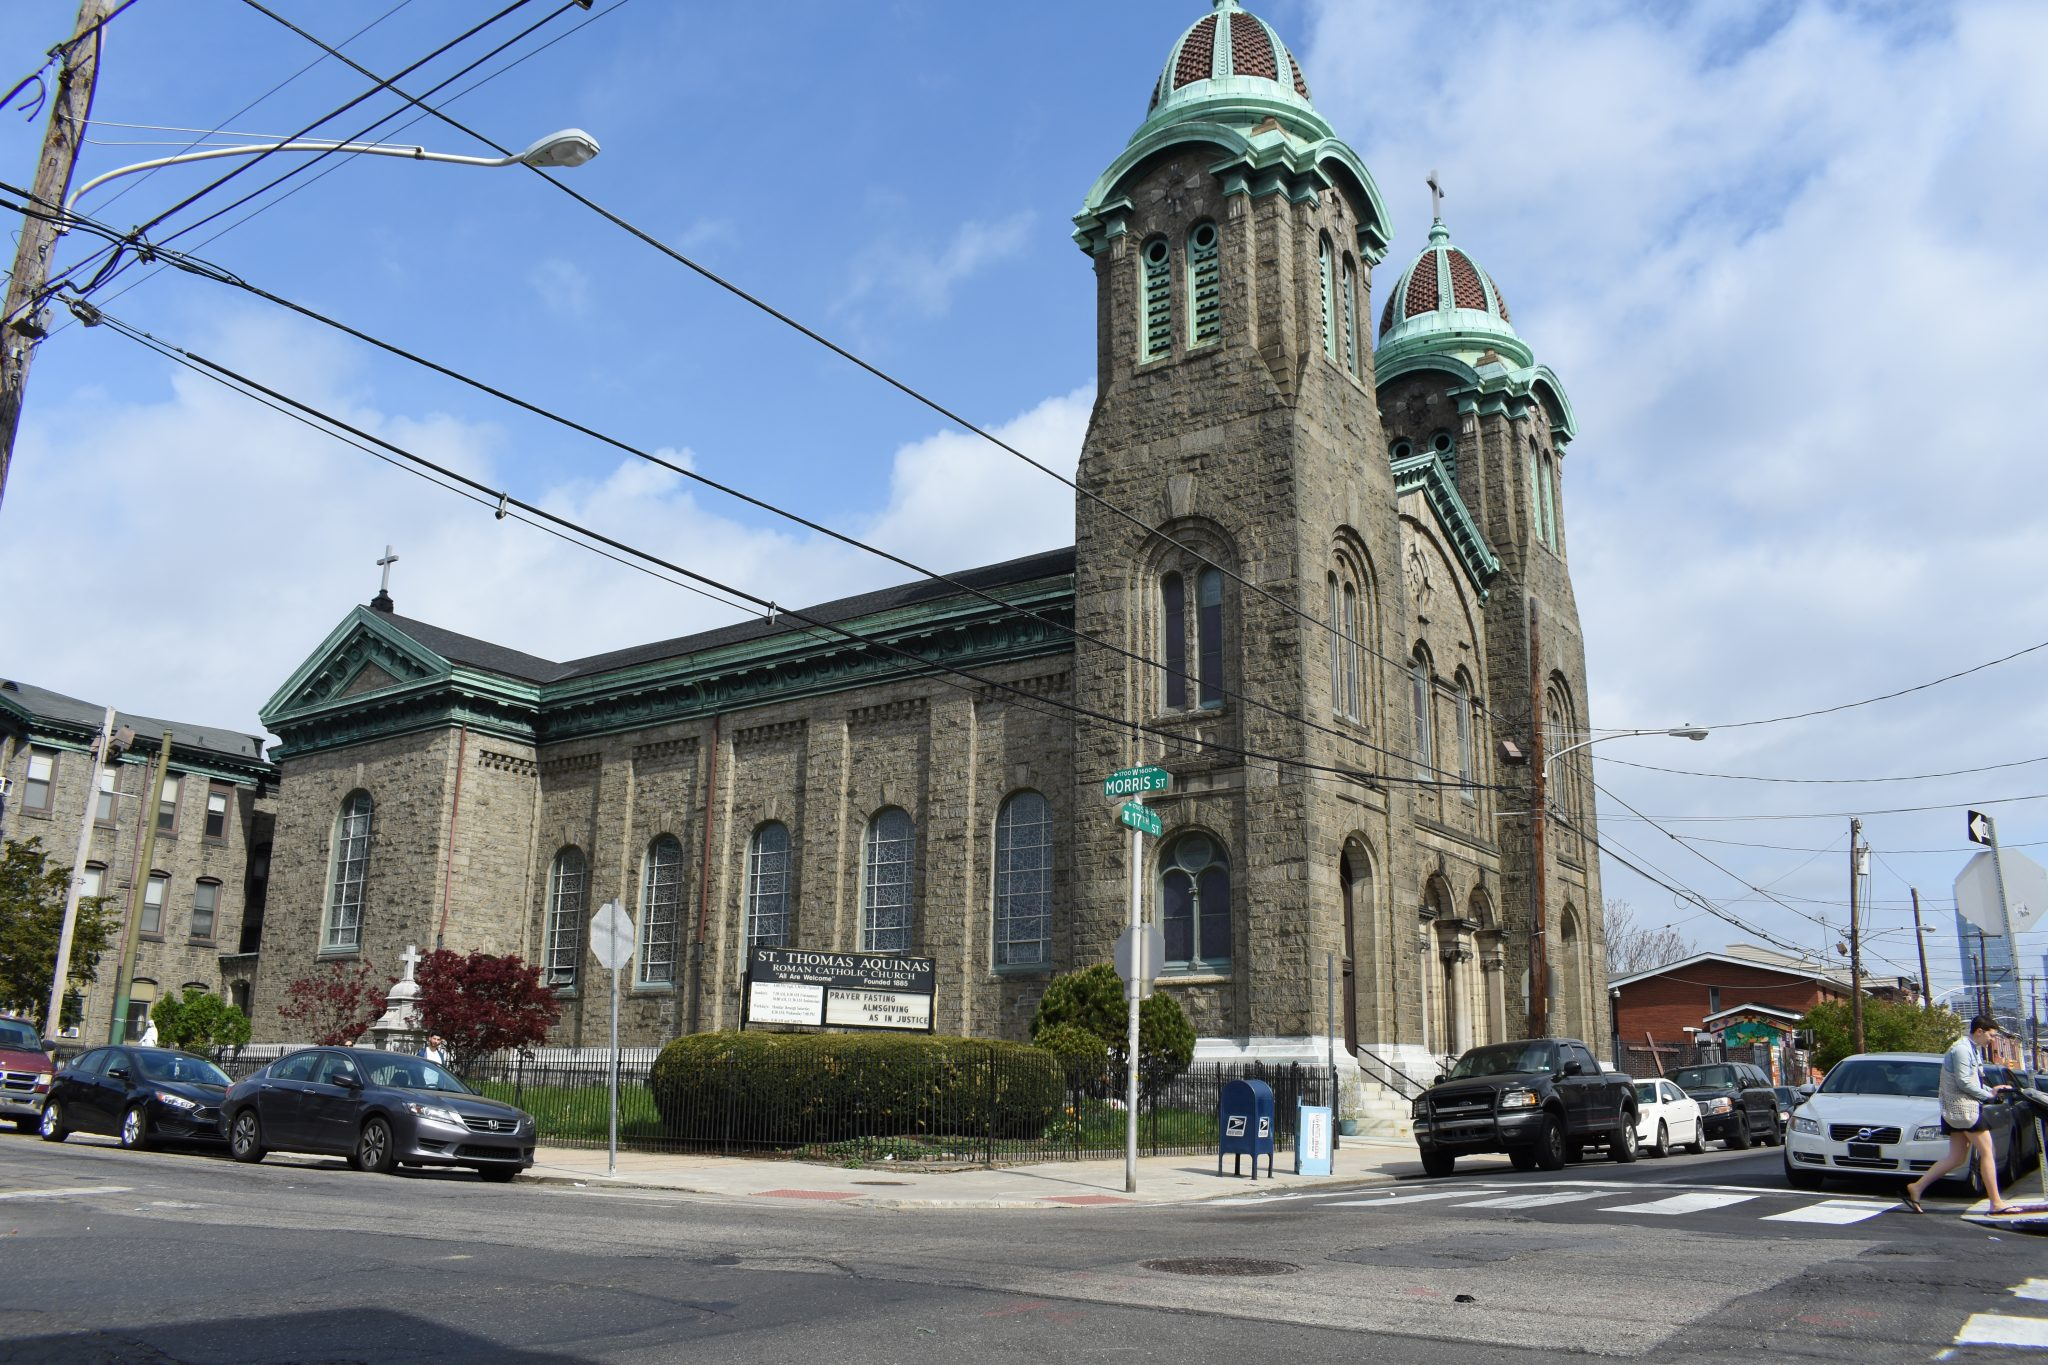 St  Thomas Aquinas Church to be considered for city's